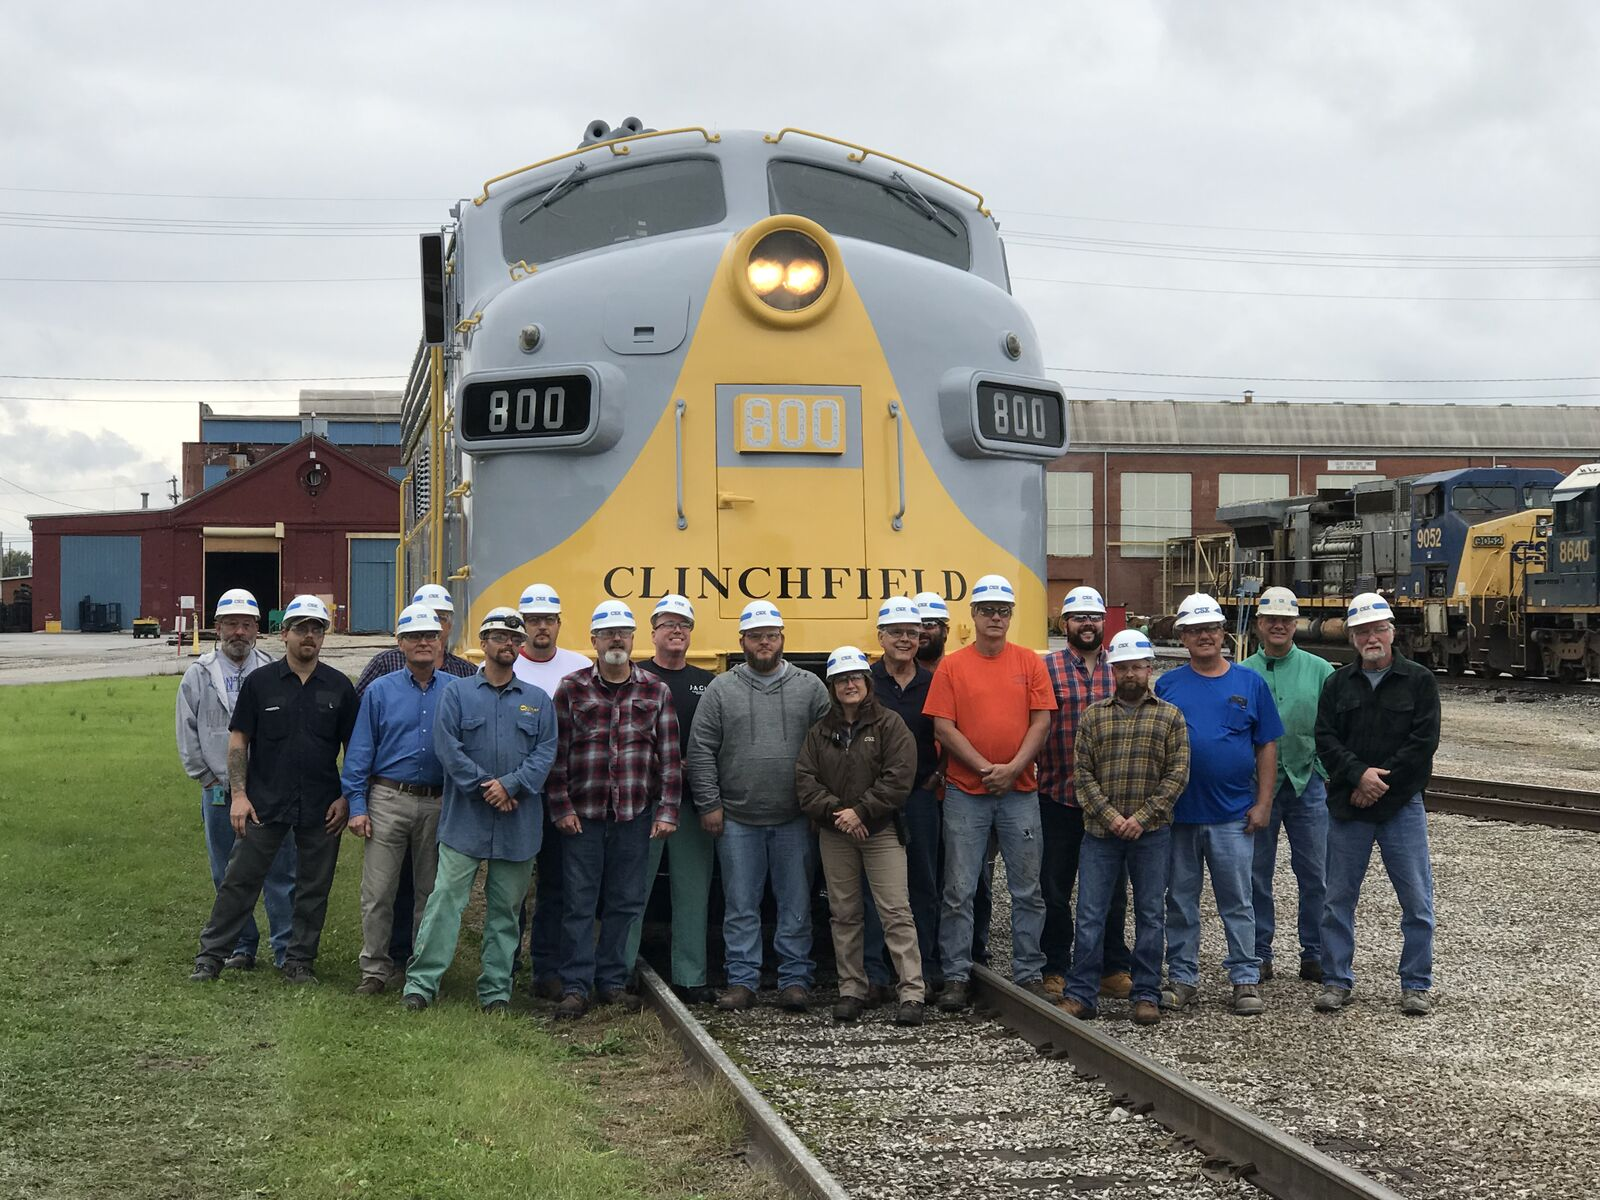 Some of the CSX employees involved in the fantastic restoration of CRR 800. Mark Glucksman photo.